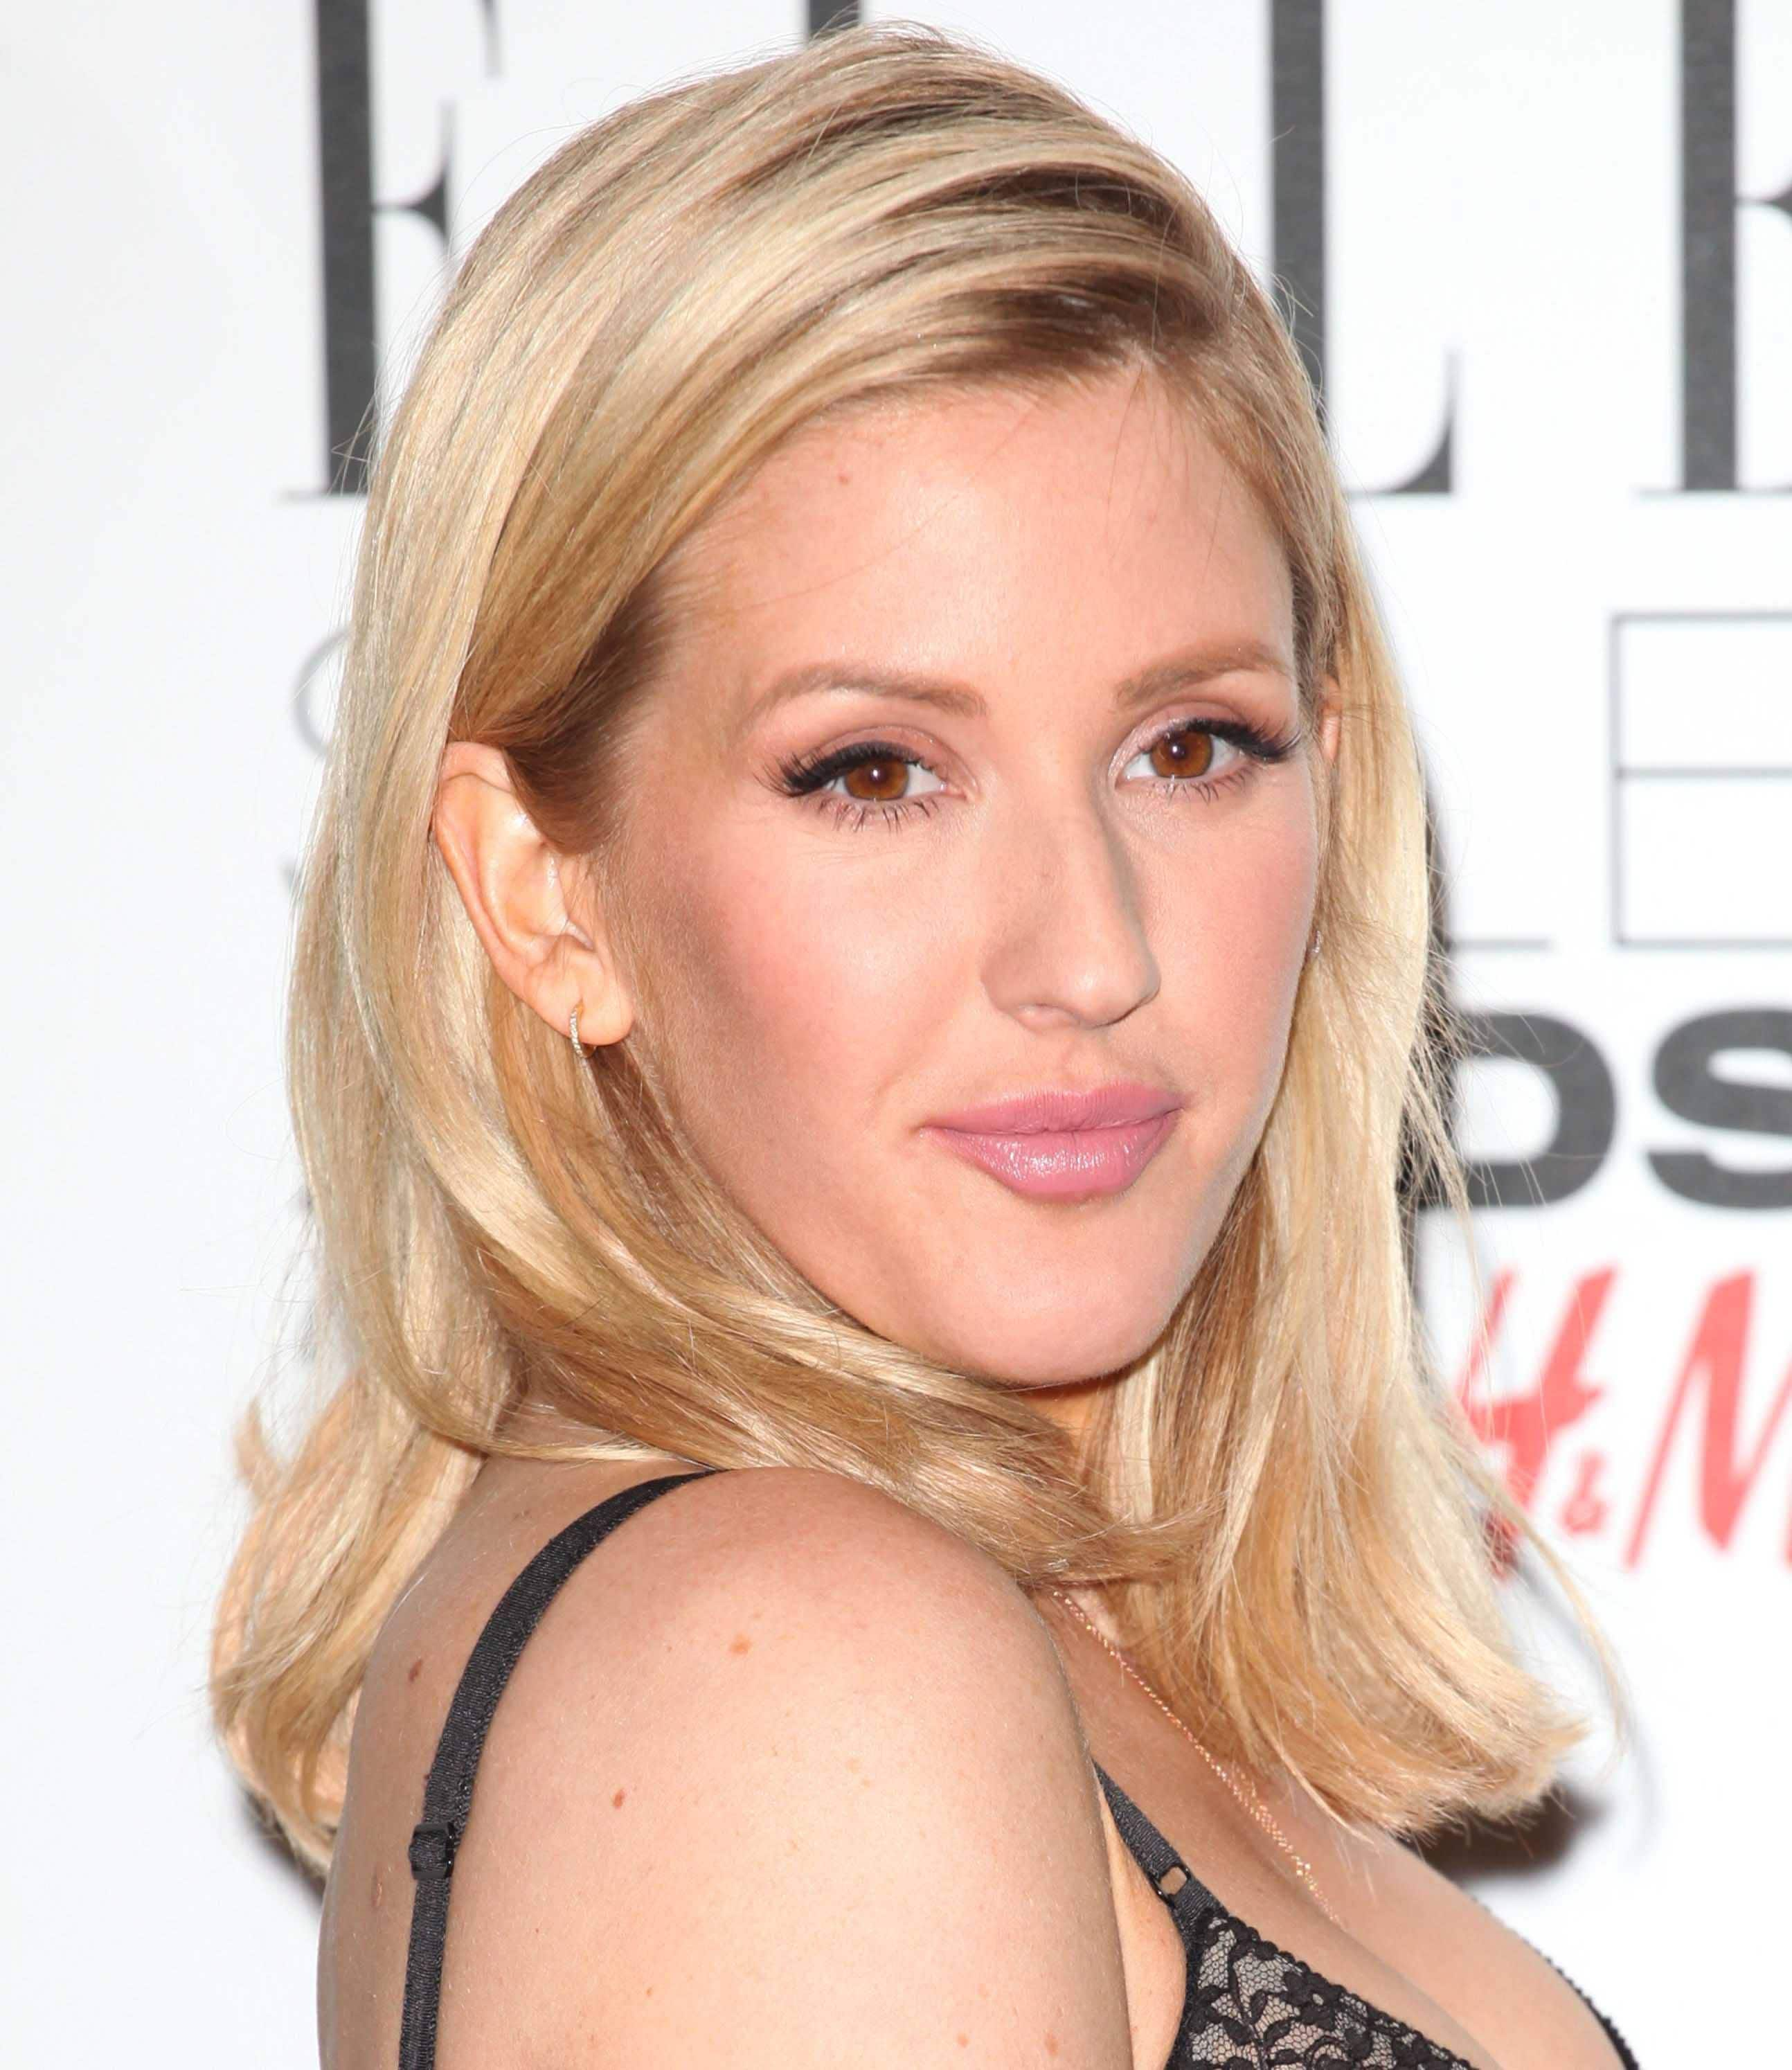 celebrity hair: All Things Hair - IMAGE - 2016 Ellie Goulding blonde medium length hair